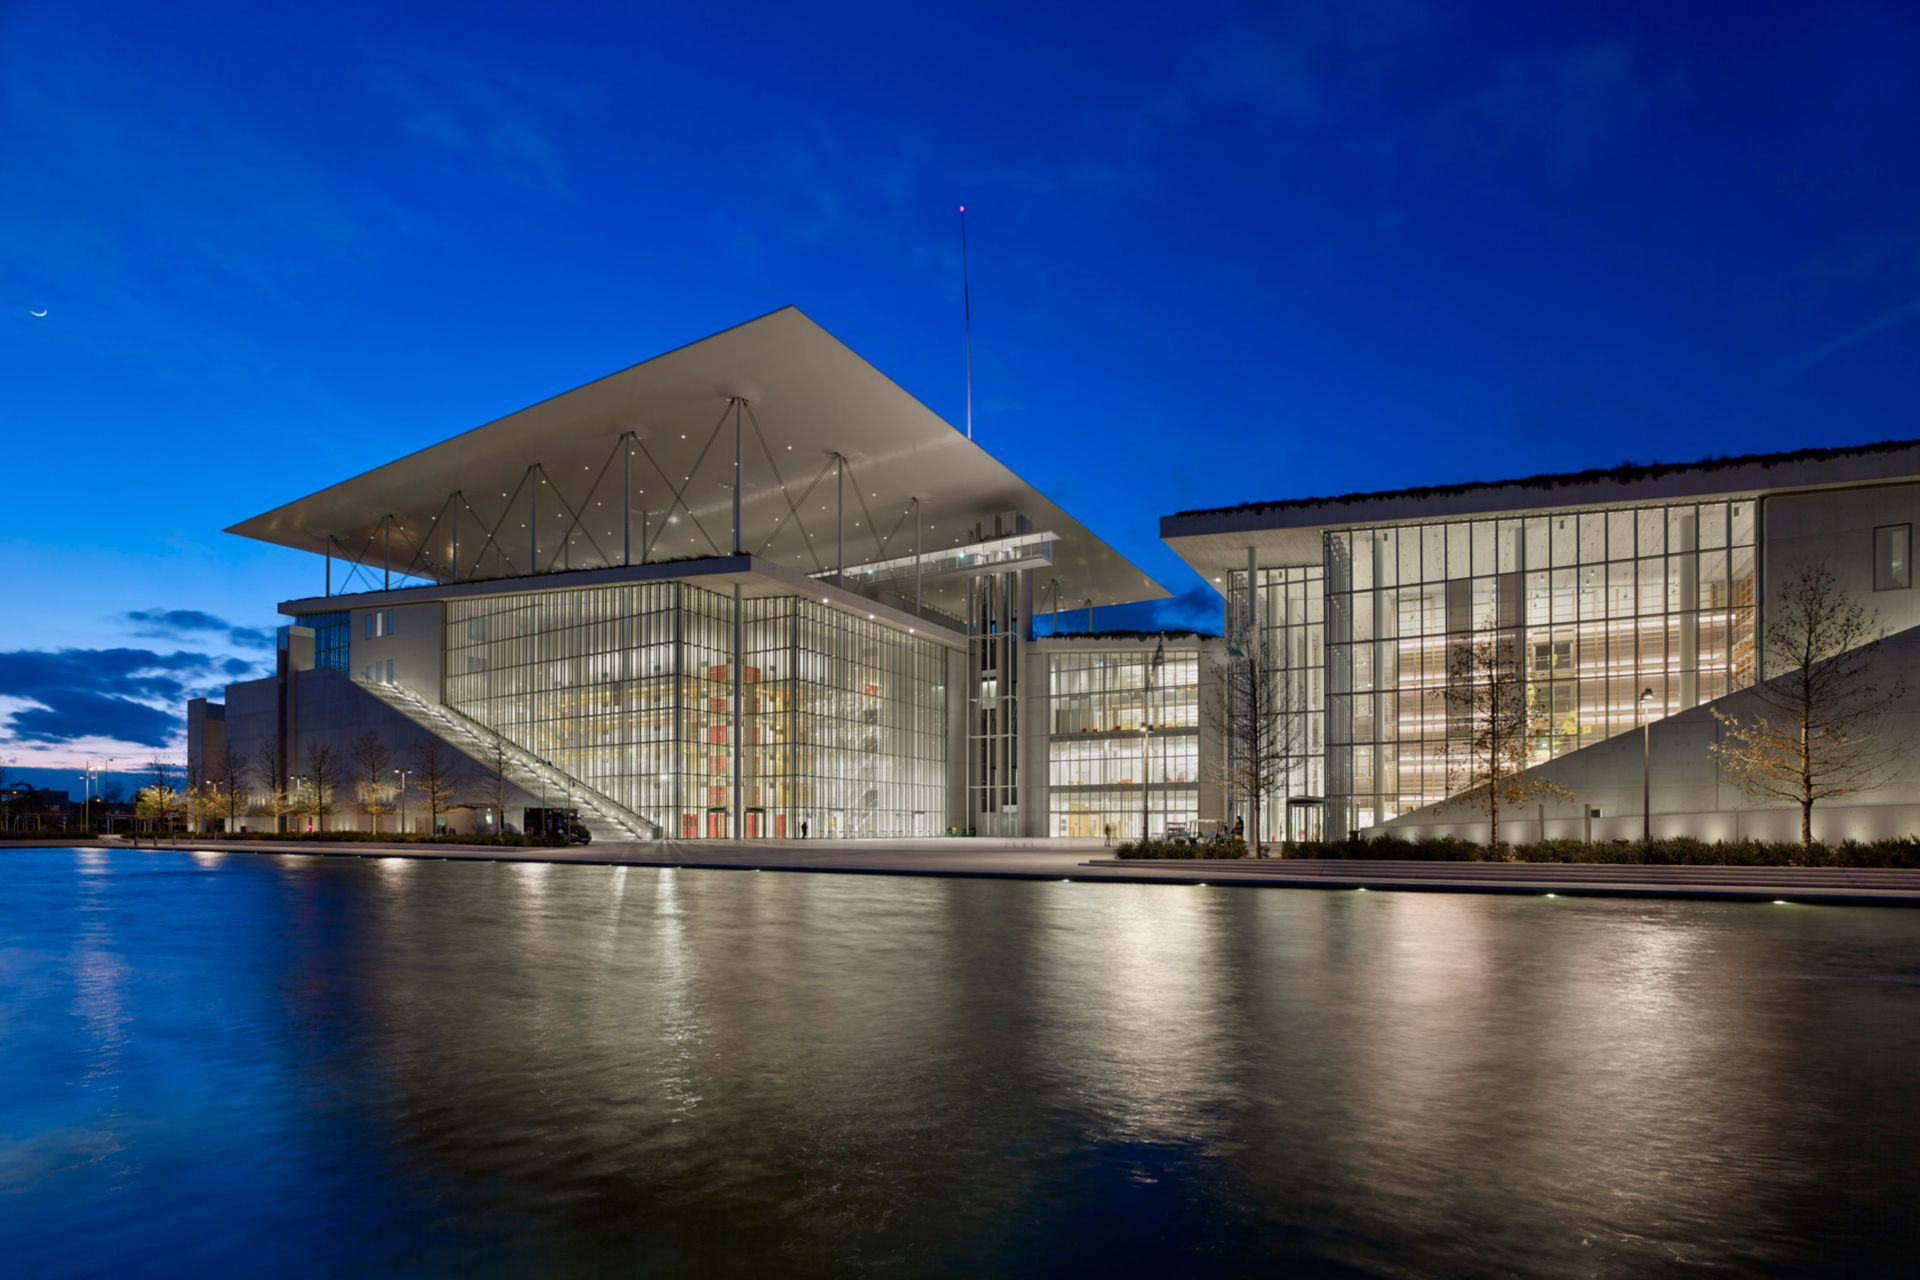 The Stavros Niarchos Foundation Cultural Center by night